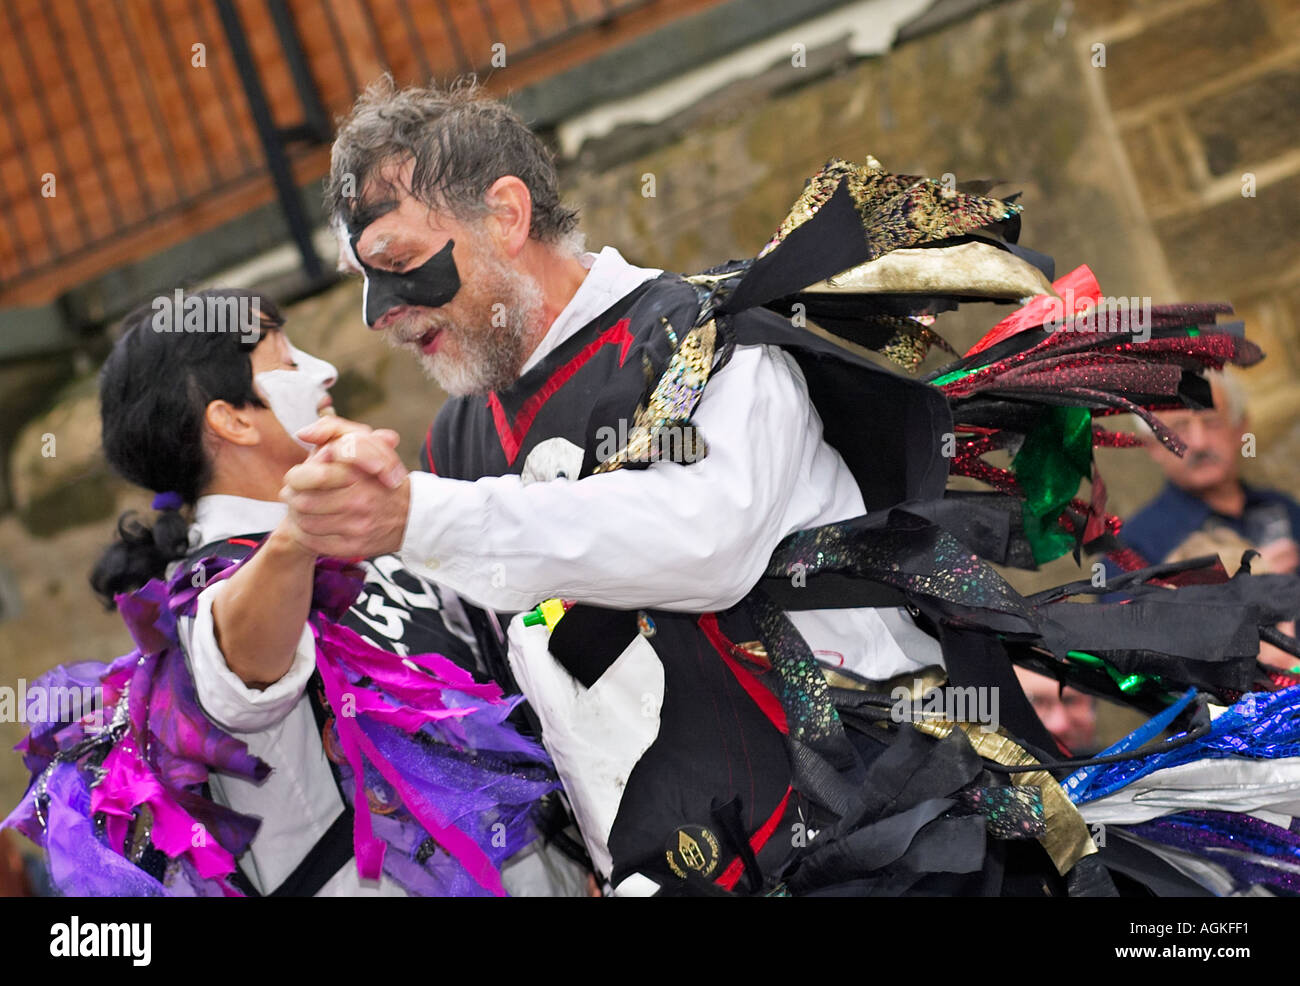 Morris man and woman couple morris dancing together at a Folk Festival Yorkshire England UK - Stock Image